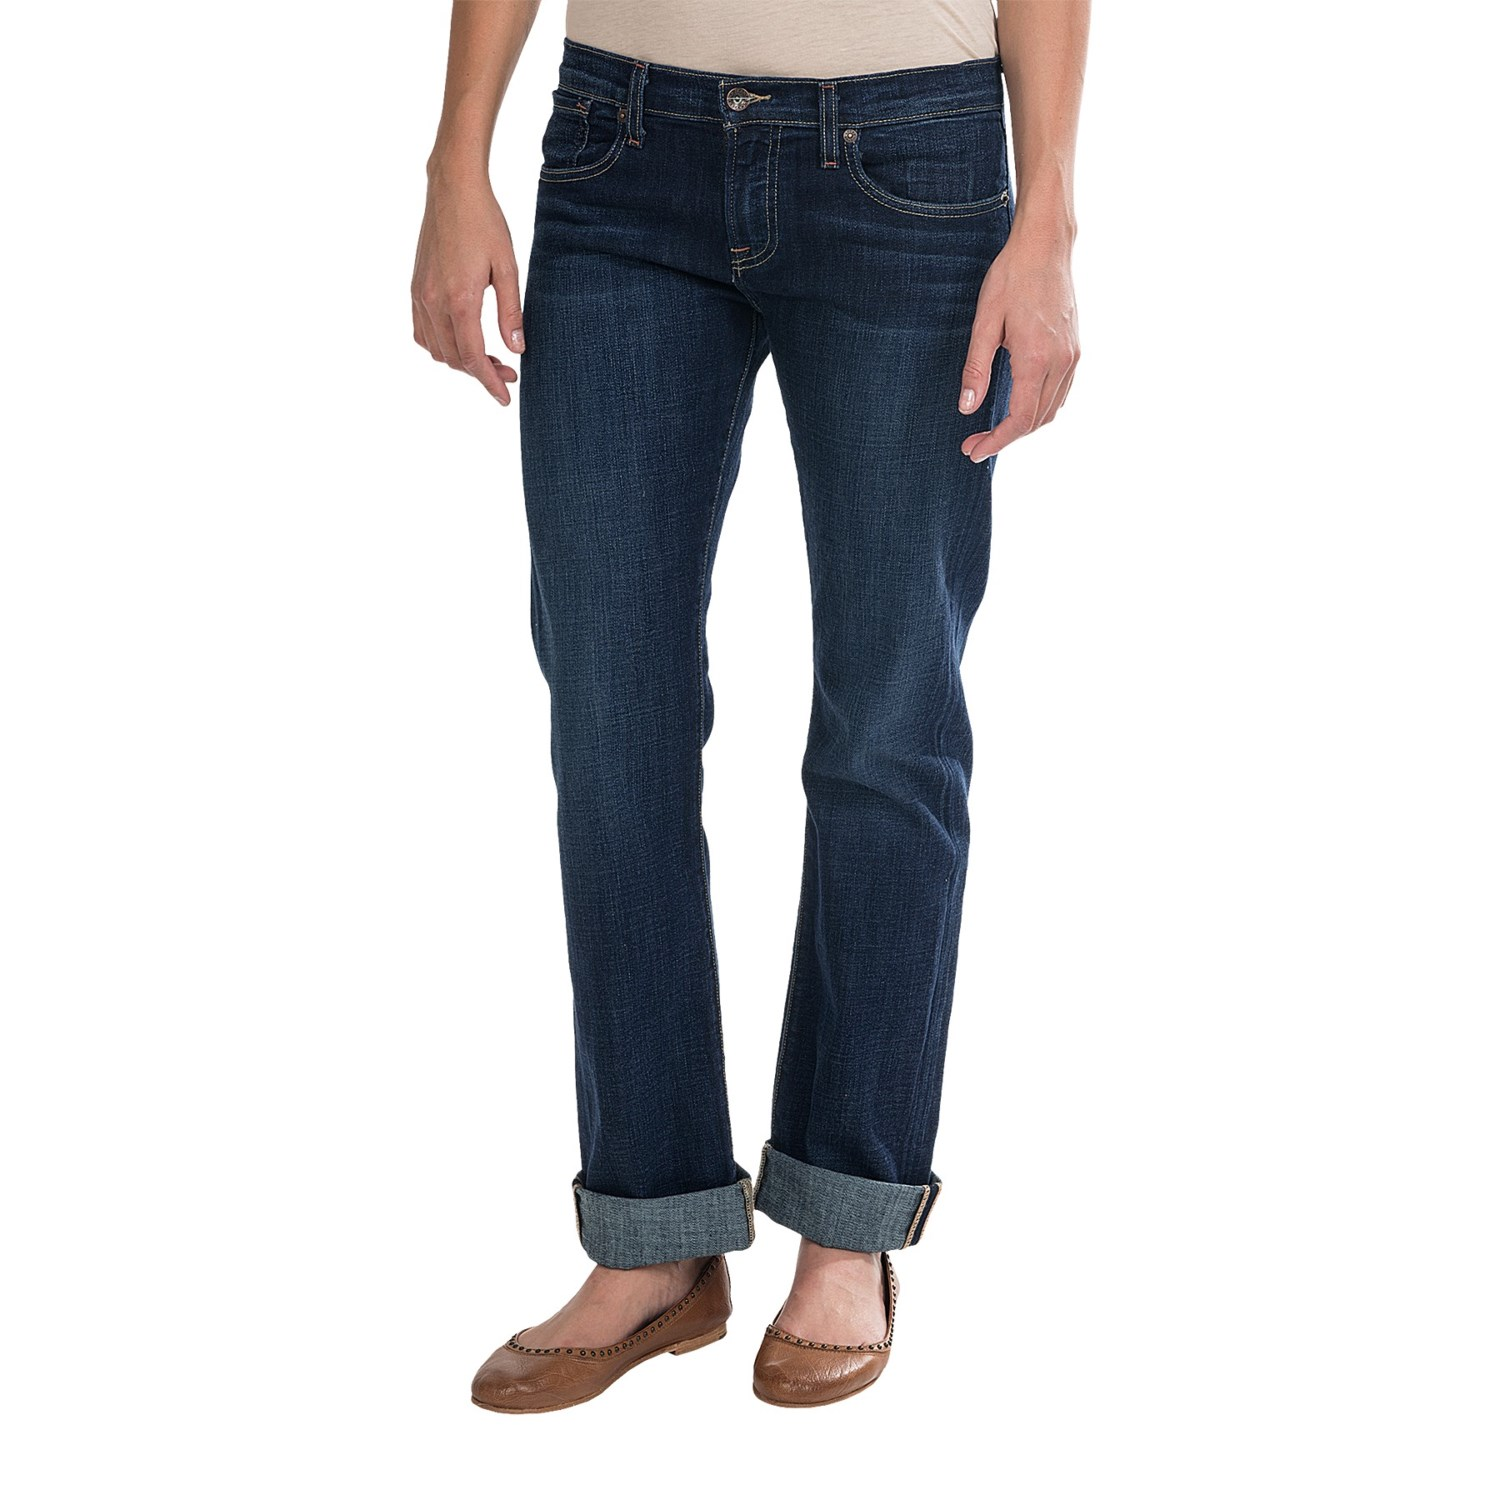 Lucky brand clothing for women